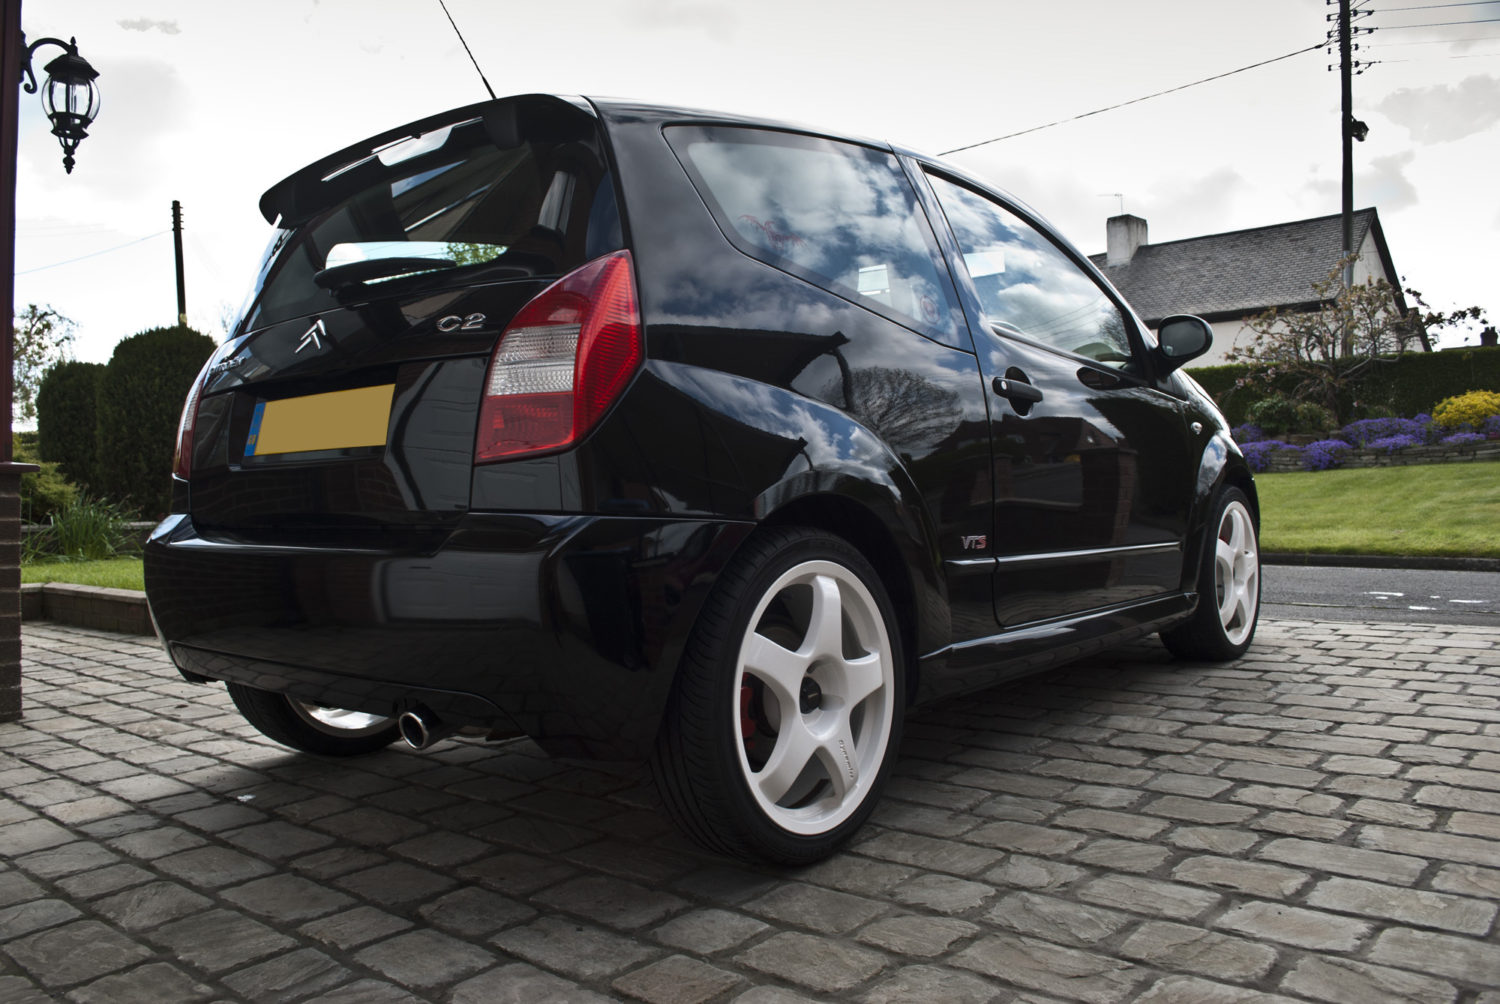 Citroen C2 Detailed by DWR Detailing